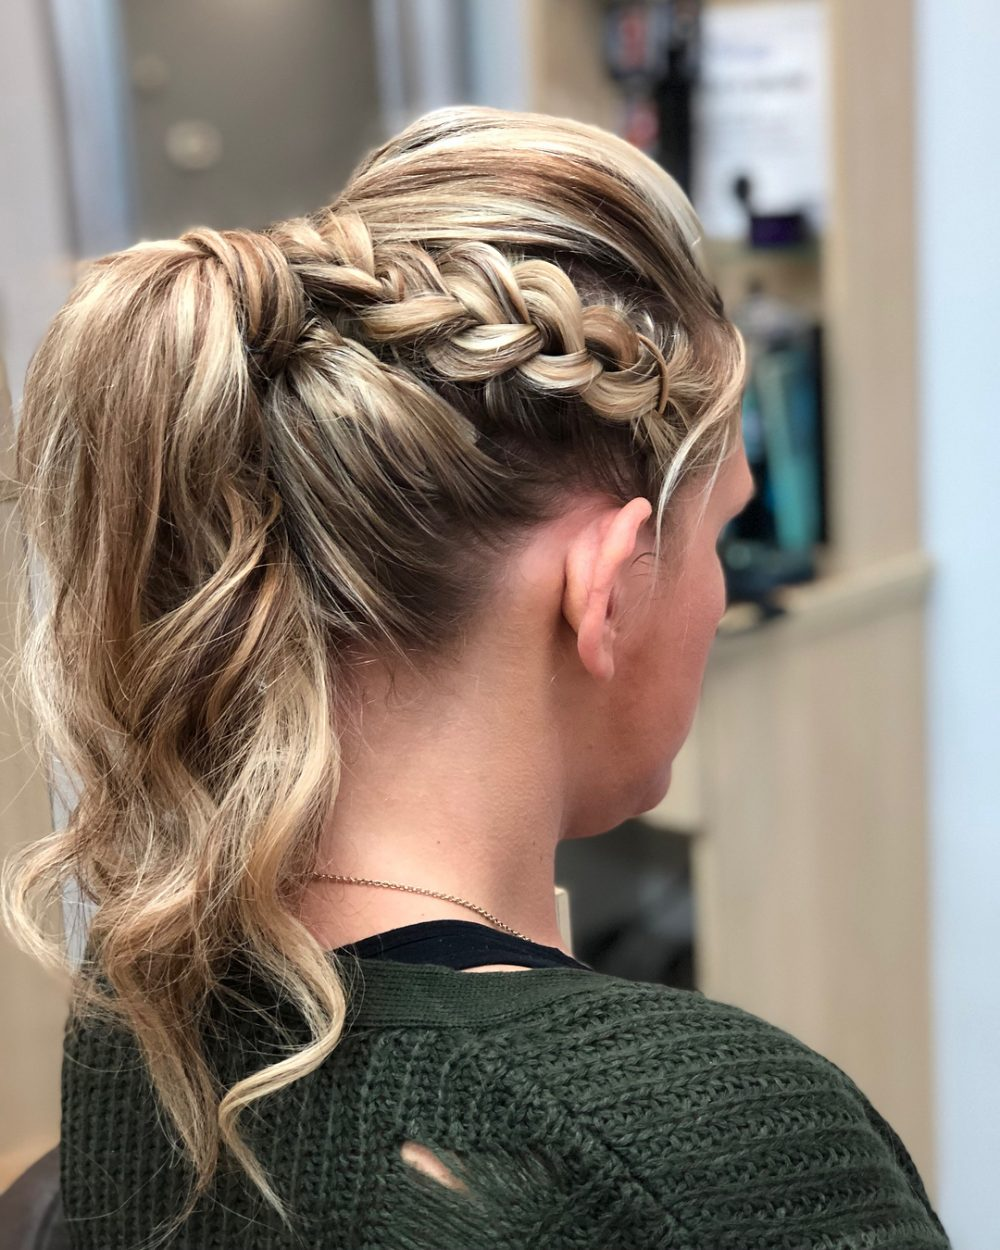 Sexy Braided Pony hairstyle